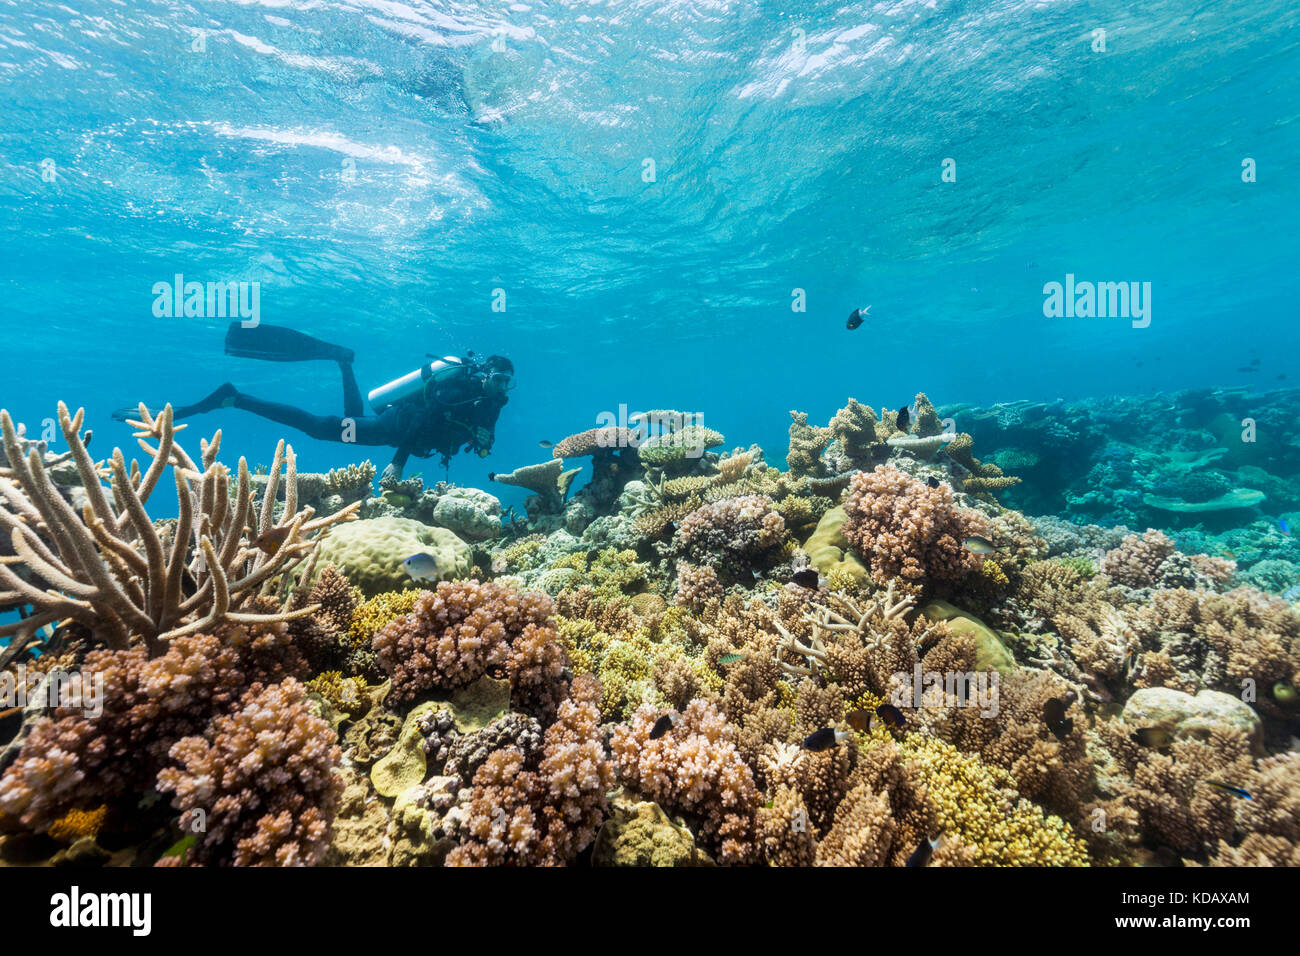 Divers exploring the coral formations of Agincourt Reef, Great Barrier Reef Marine Park, Port Douglas, Queensland, - Stock Image